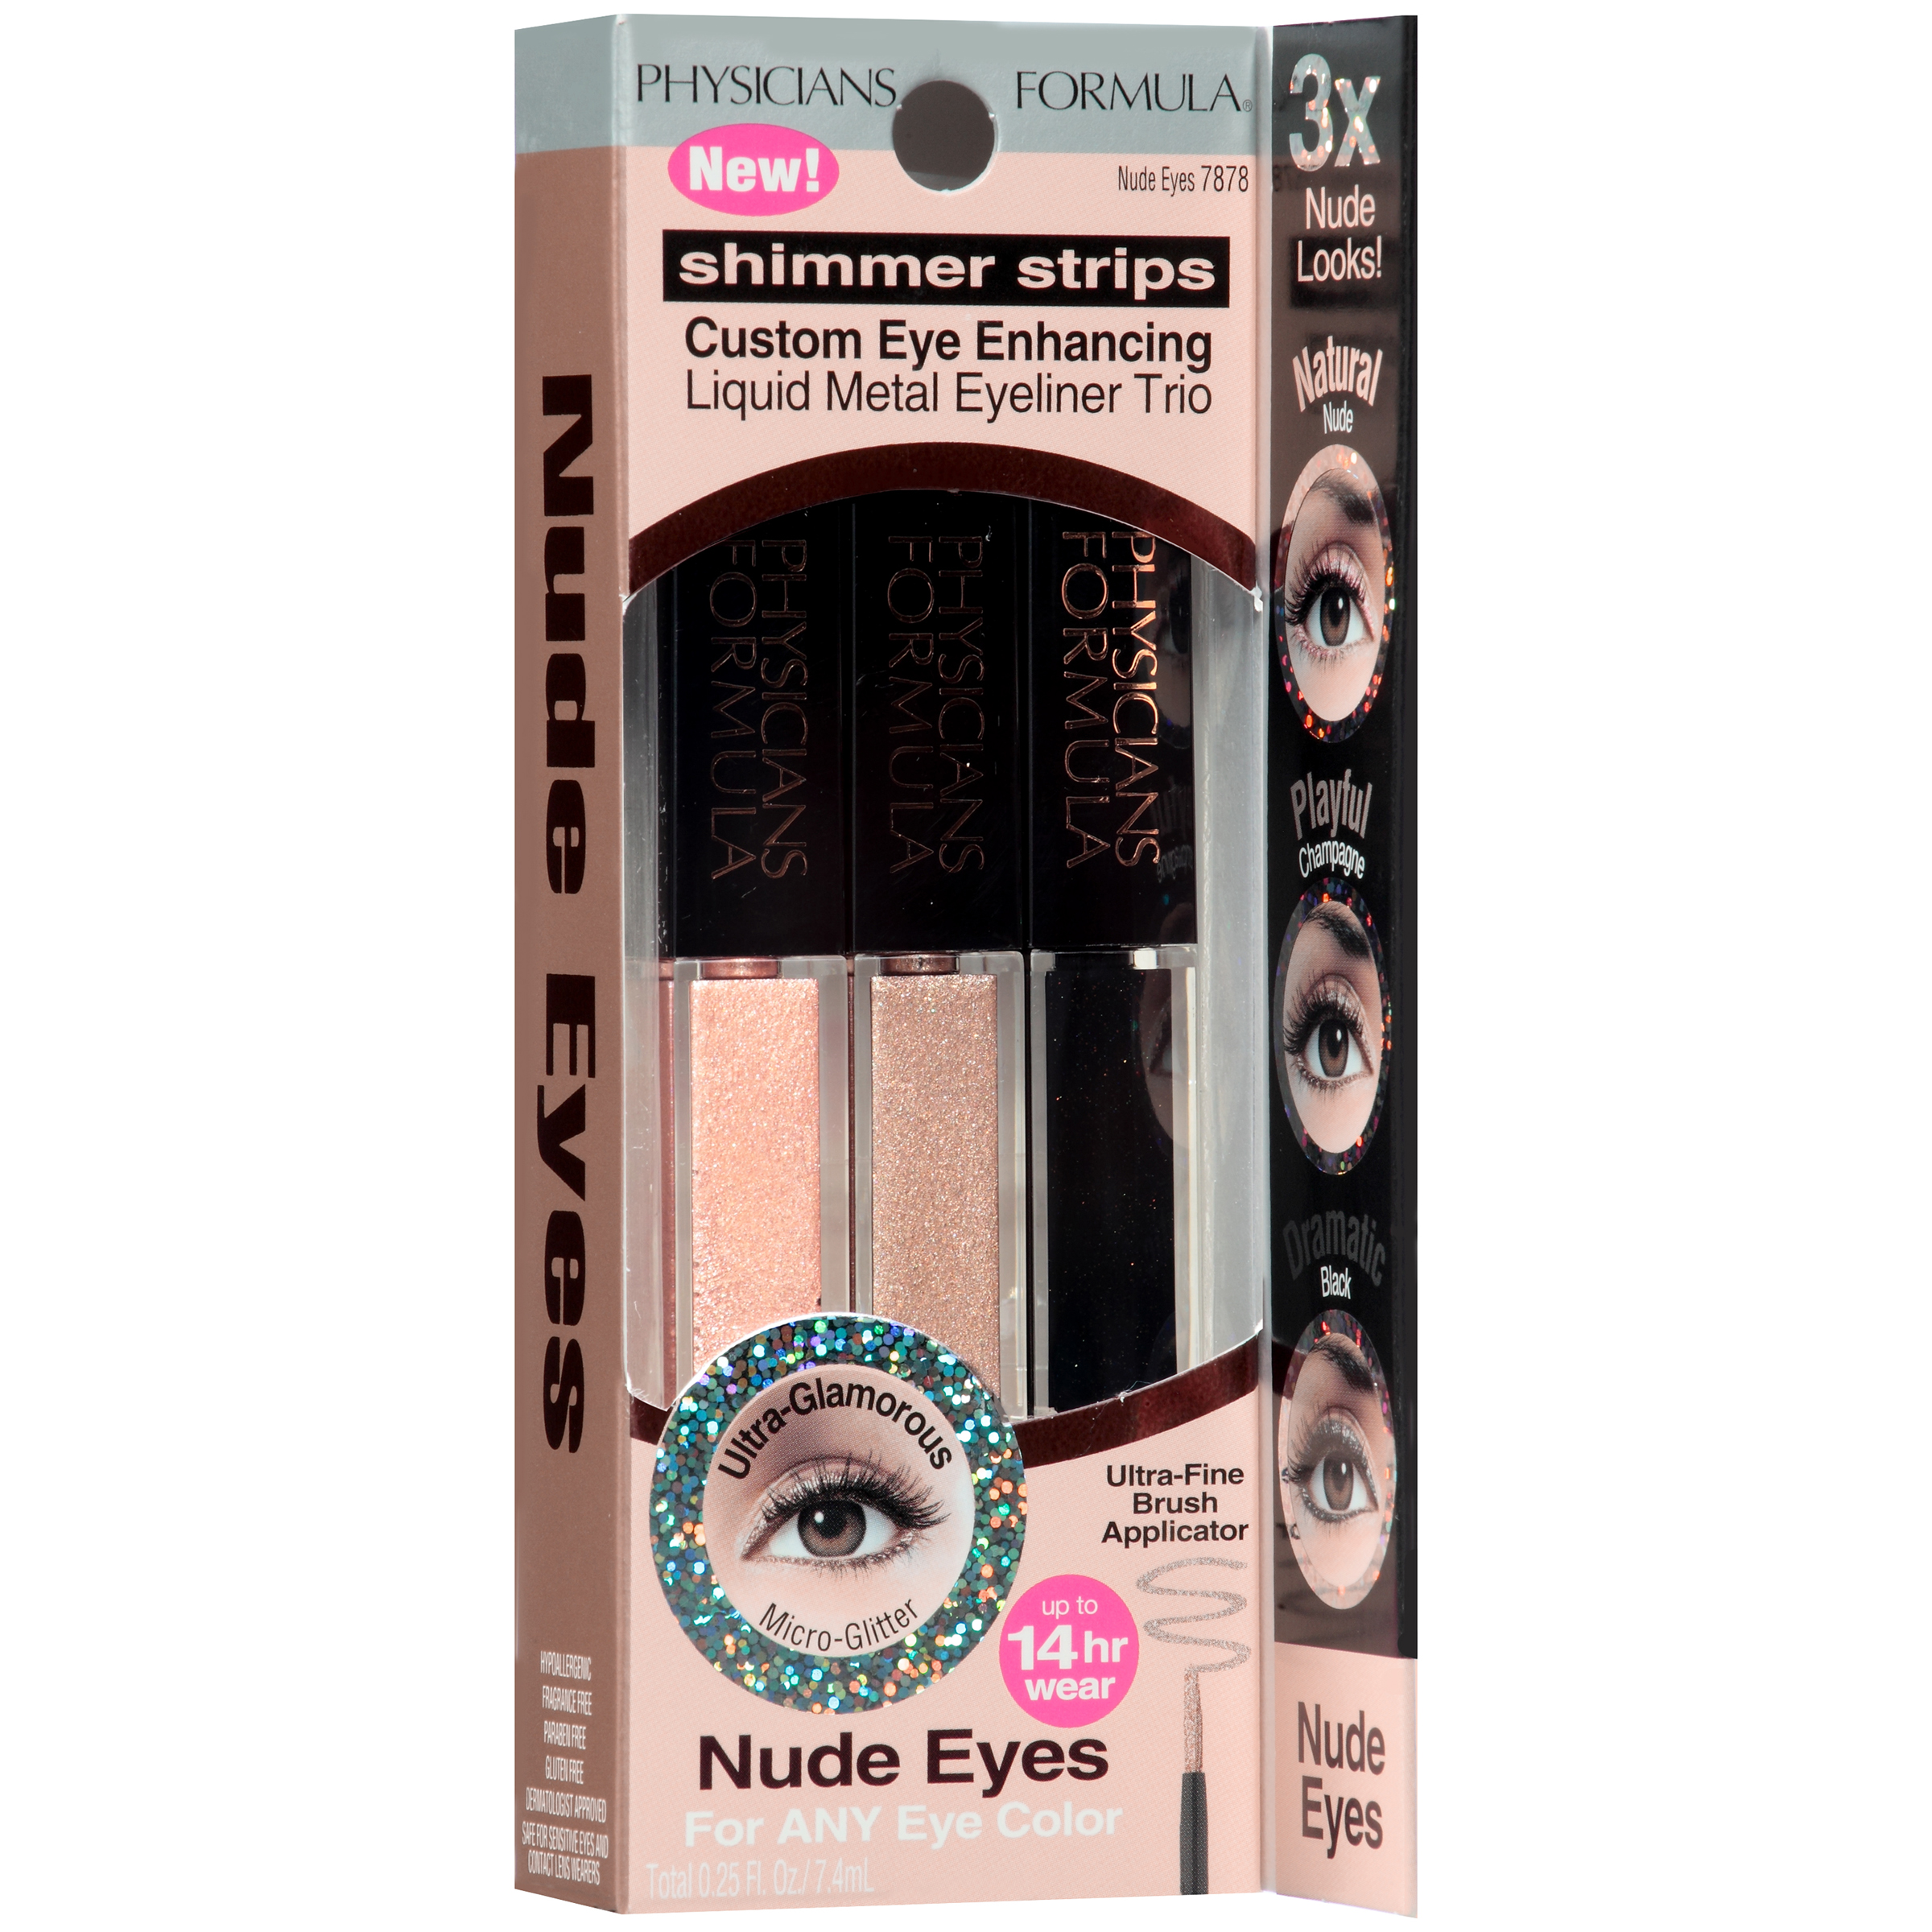 Physicians Formula�� Shimmer Strips Nude Eyes Custom Eye Enhancing Liquid Metal Eyeliner Trio 0.25 fl. oz. Box